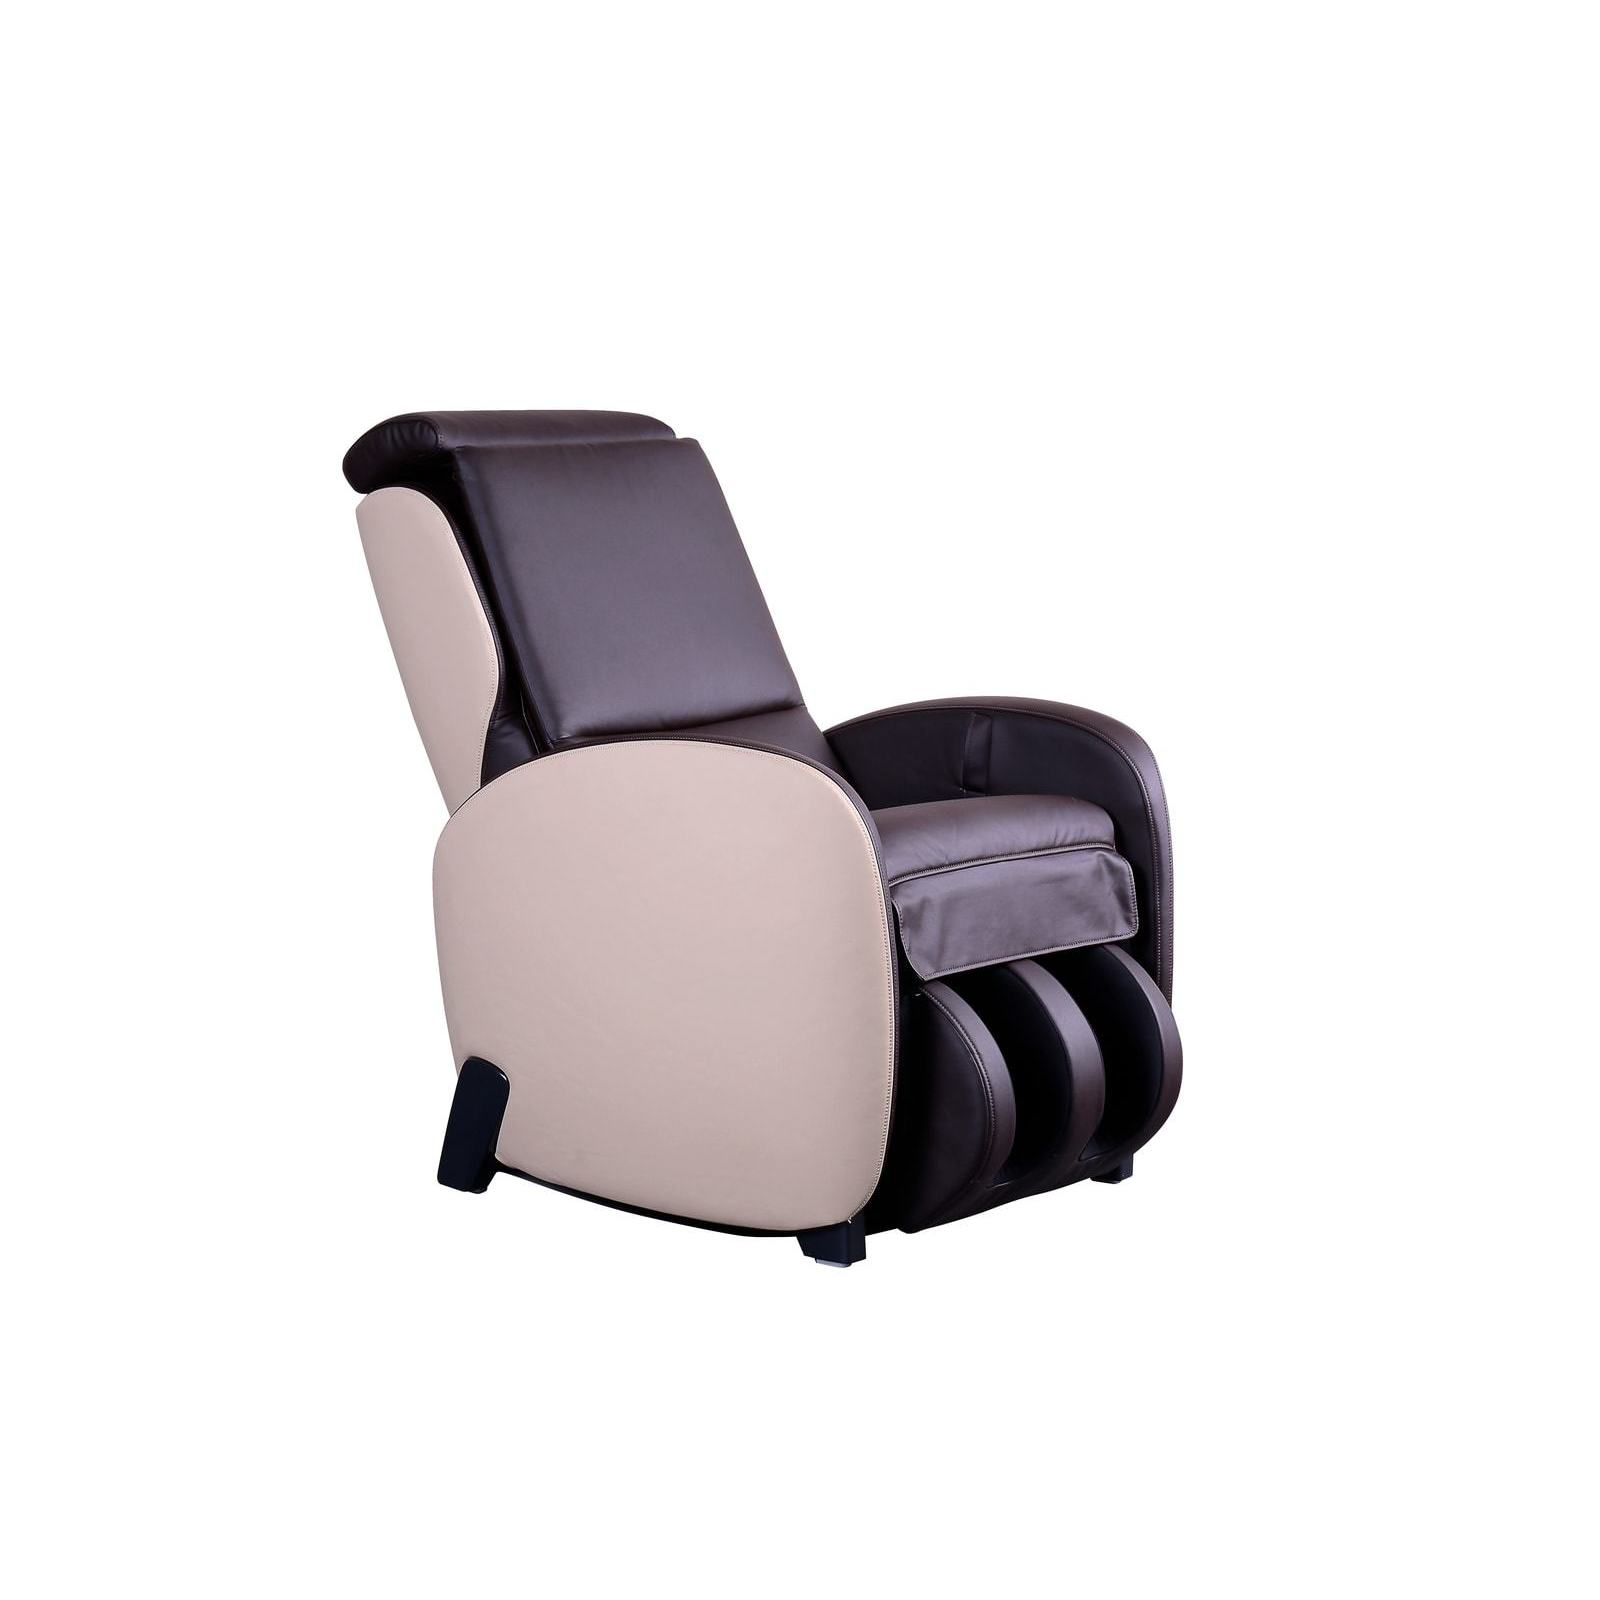 HoMedics Massage Chair with Quad Rollers Back Scanning Free